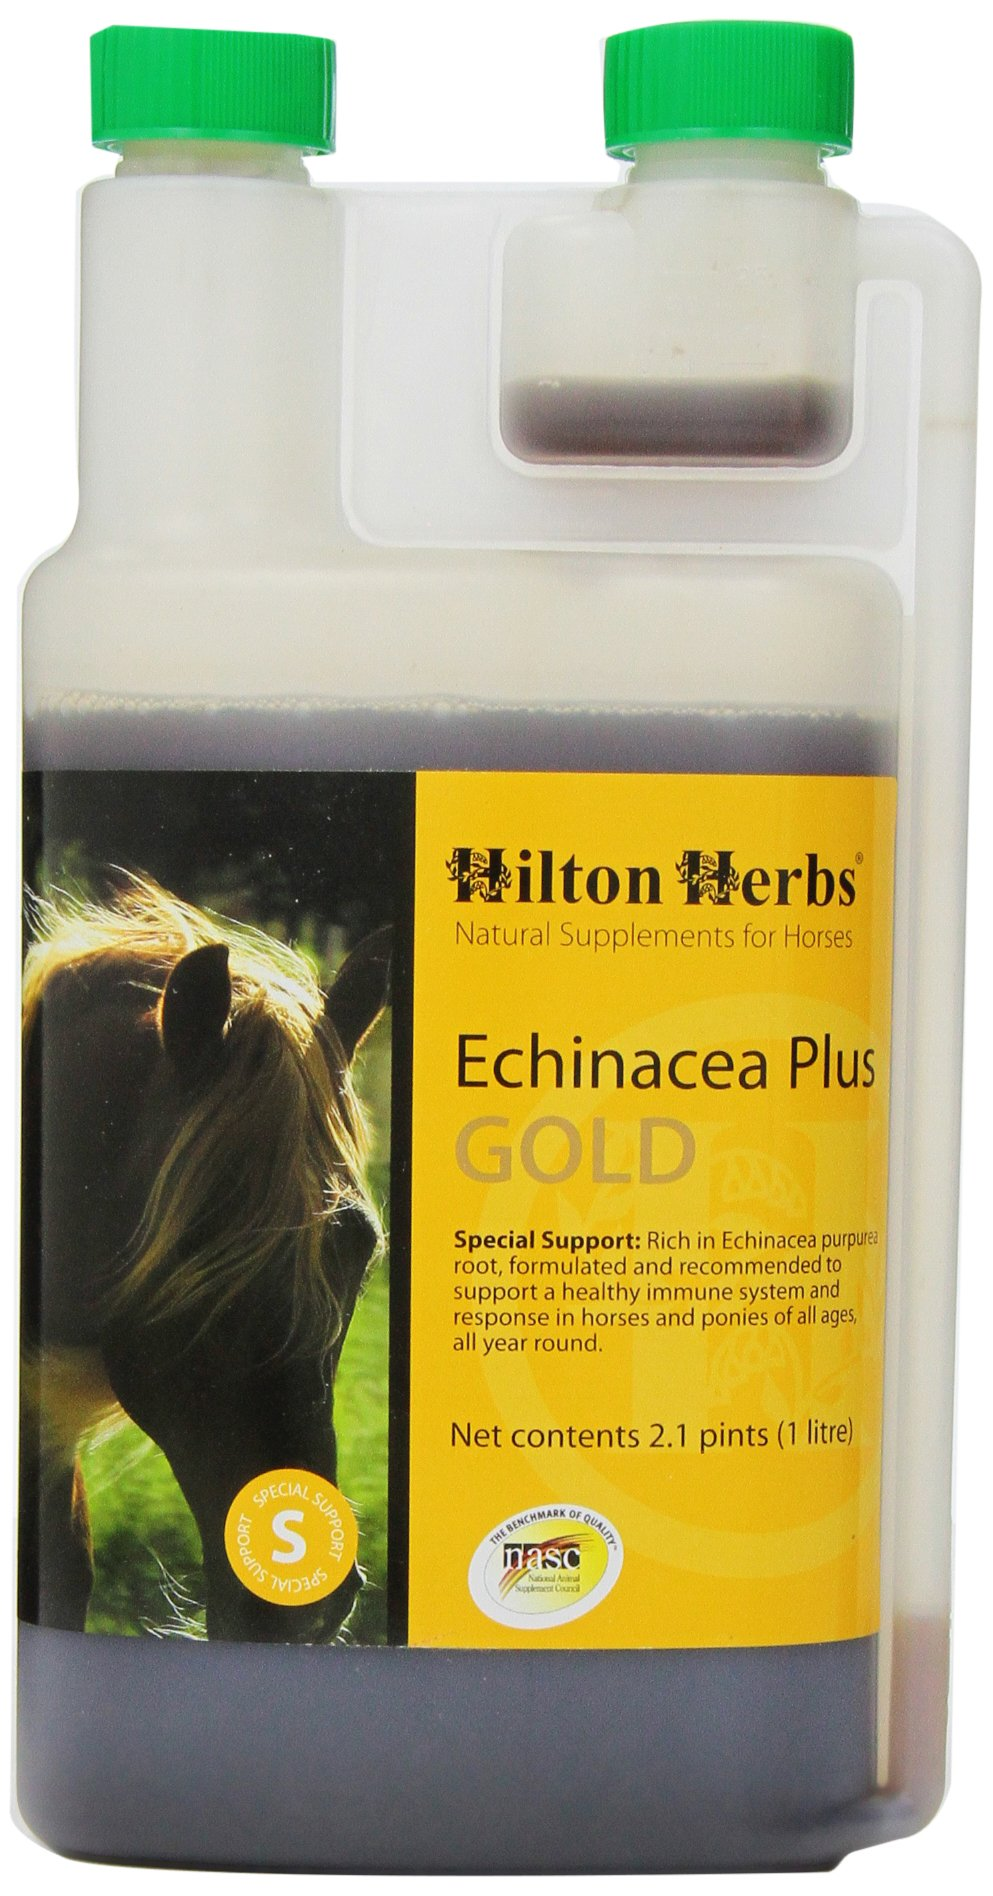 Hilton Herbs Echinacea Plus Gold Liquid Herbal Immunity Supplement for Horses, 2.1pt Bottle